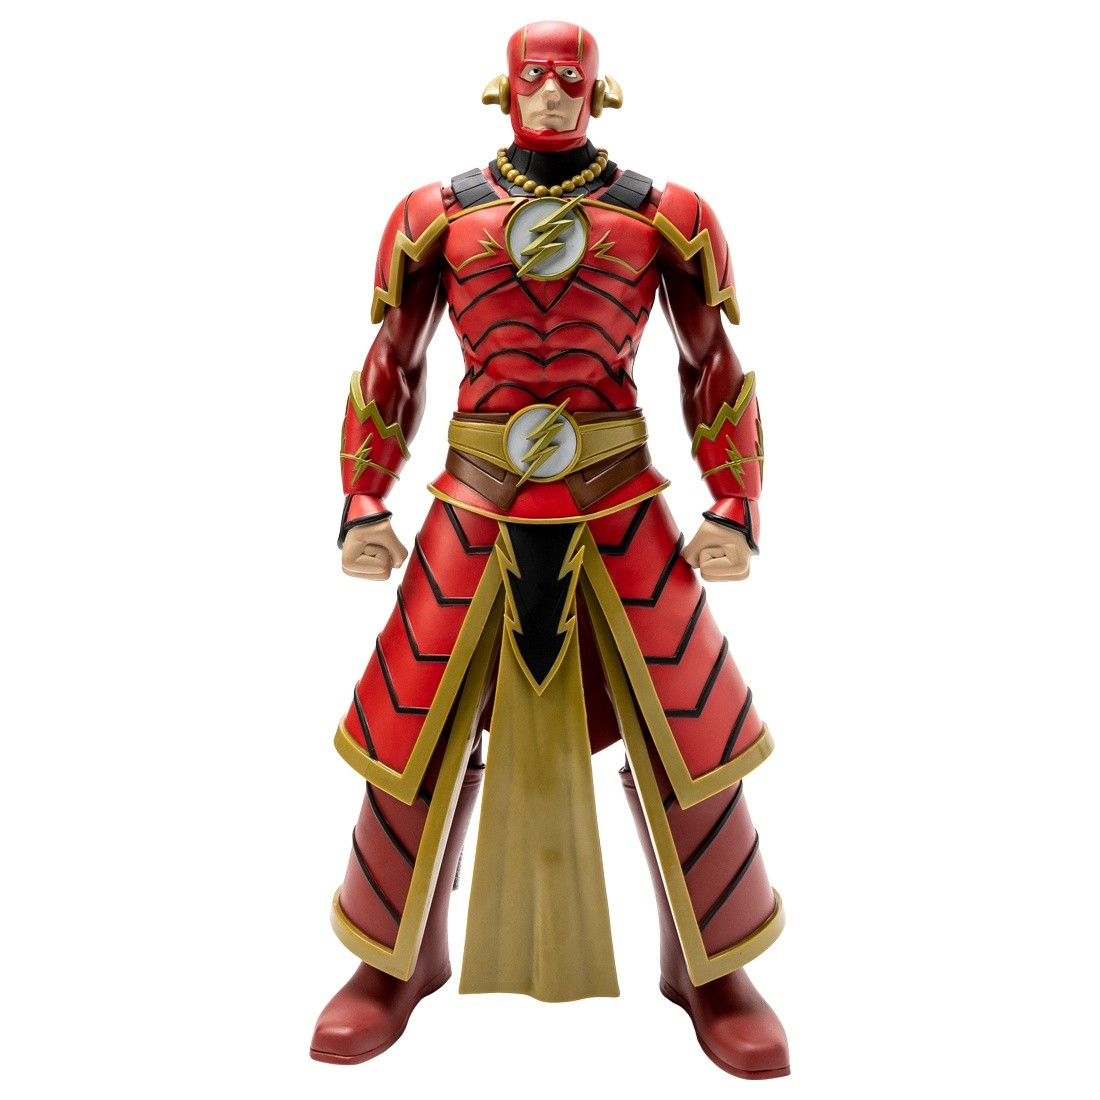 MINDstyle x DC x Imperial Palace 15 Inch The Flash Figure (red)